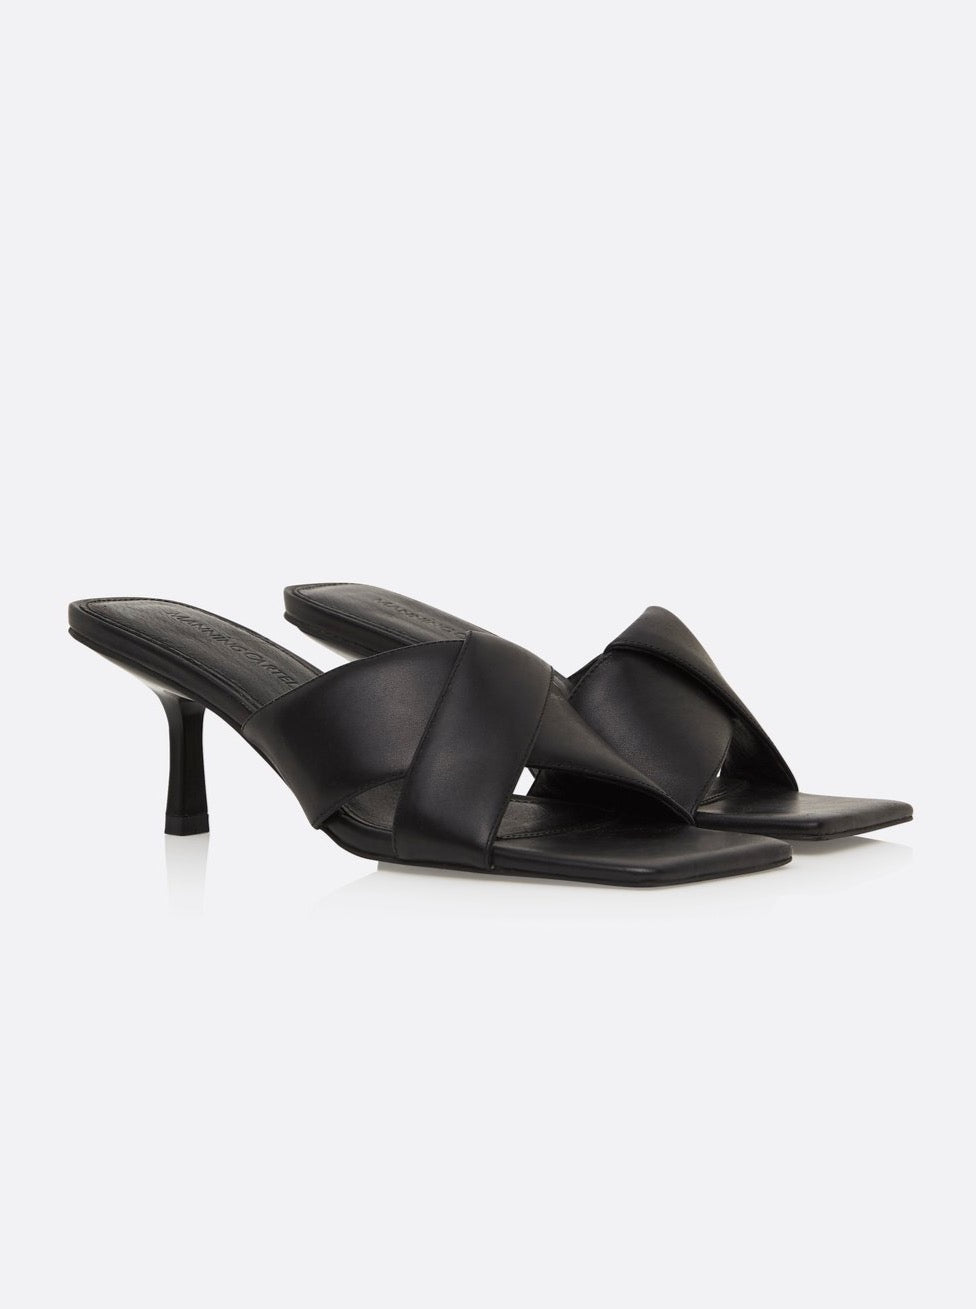 Manning Cartell Instant Gratification Padded Mule in Black